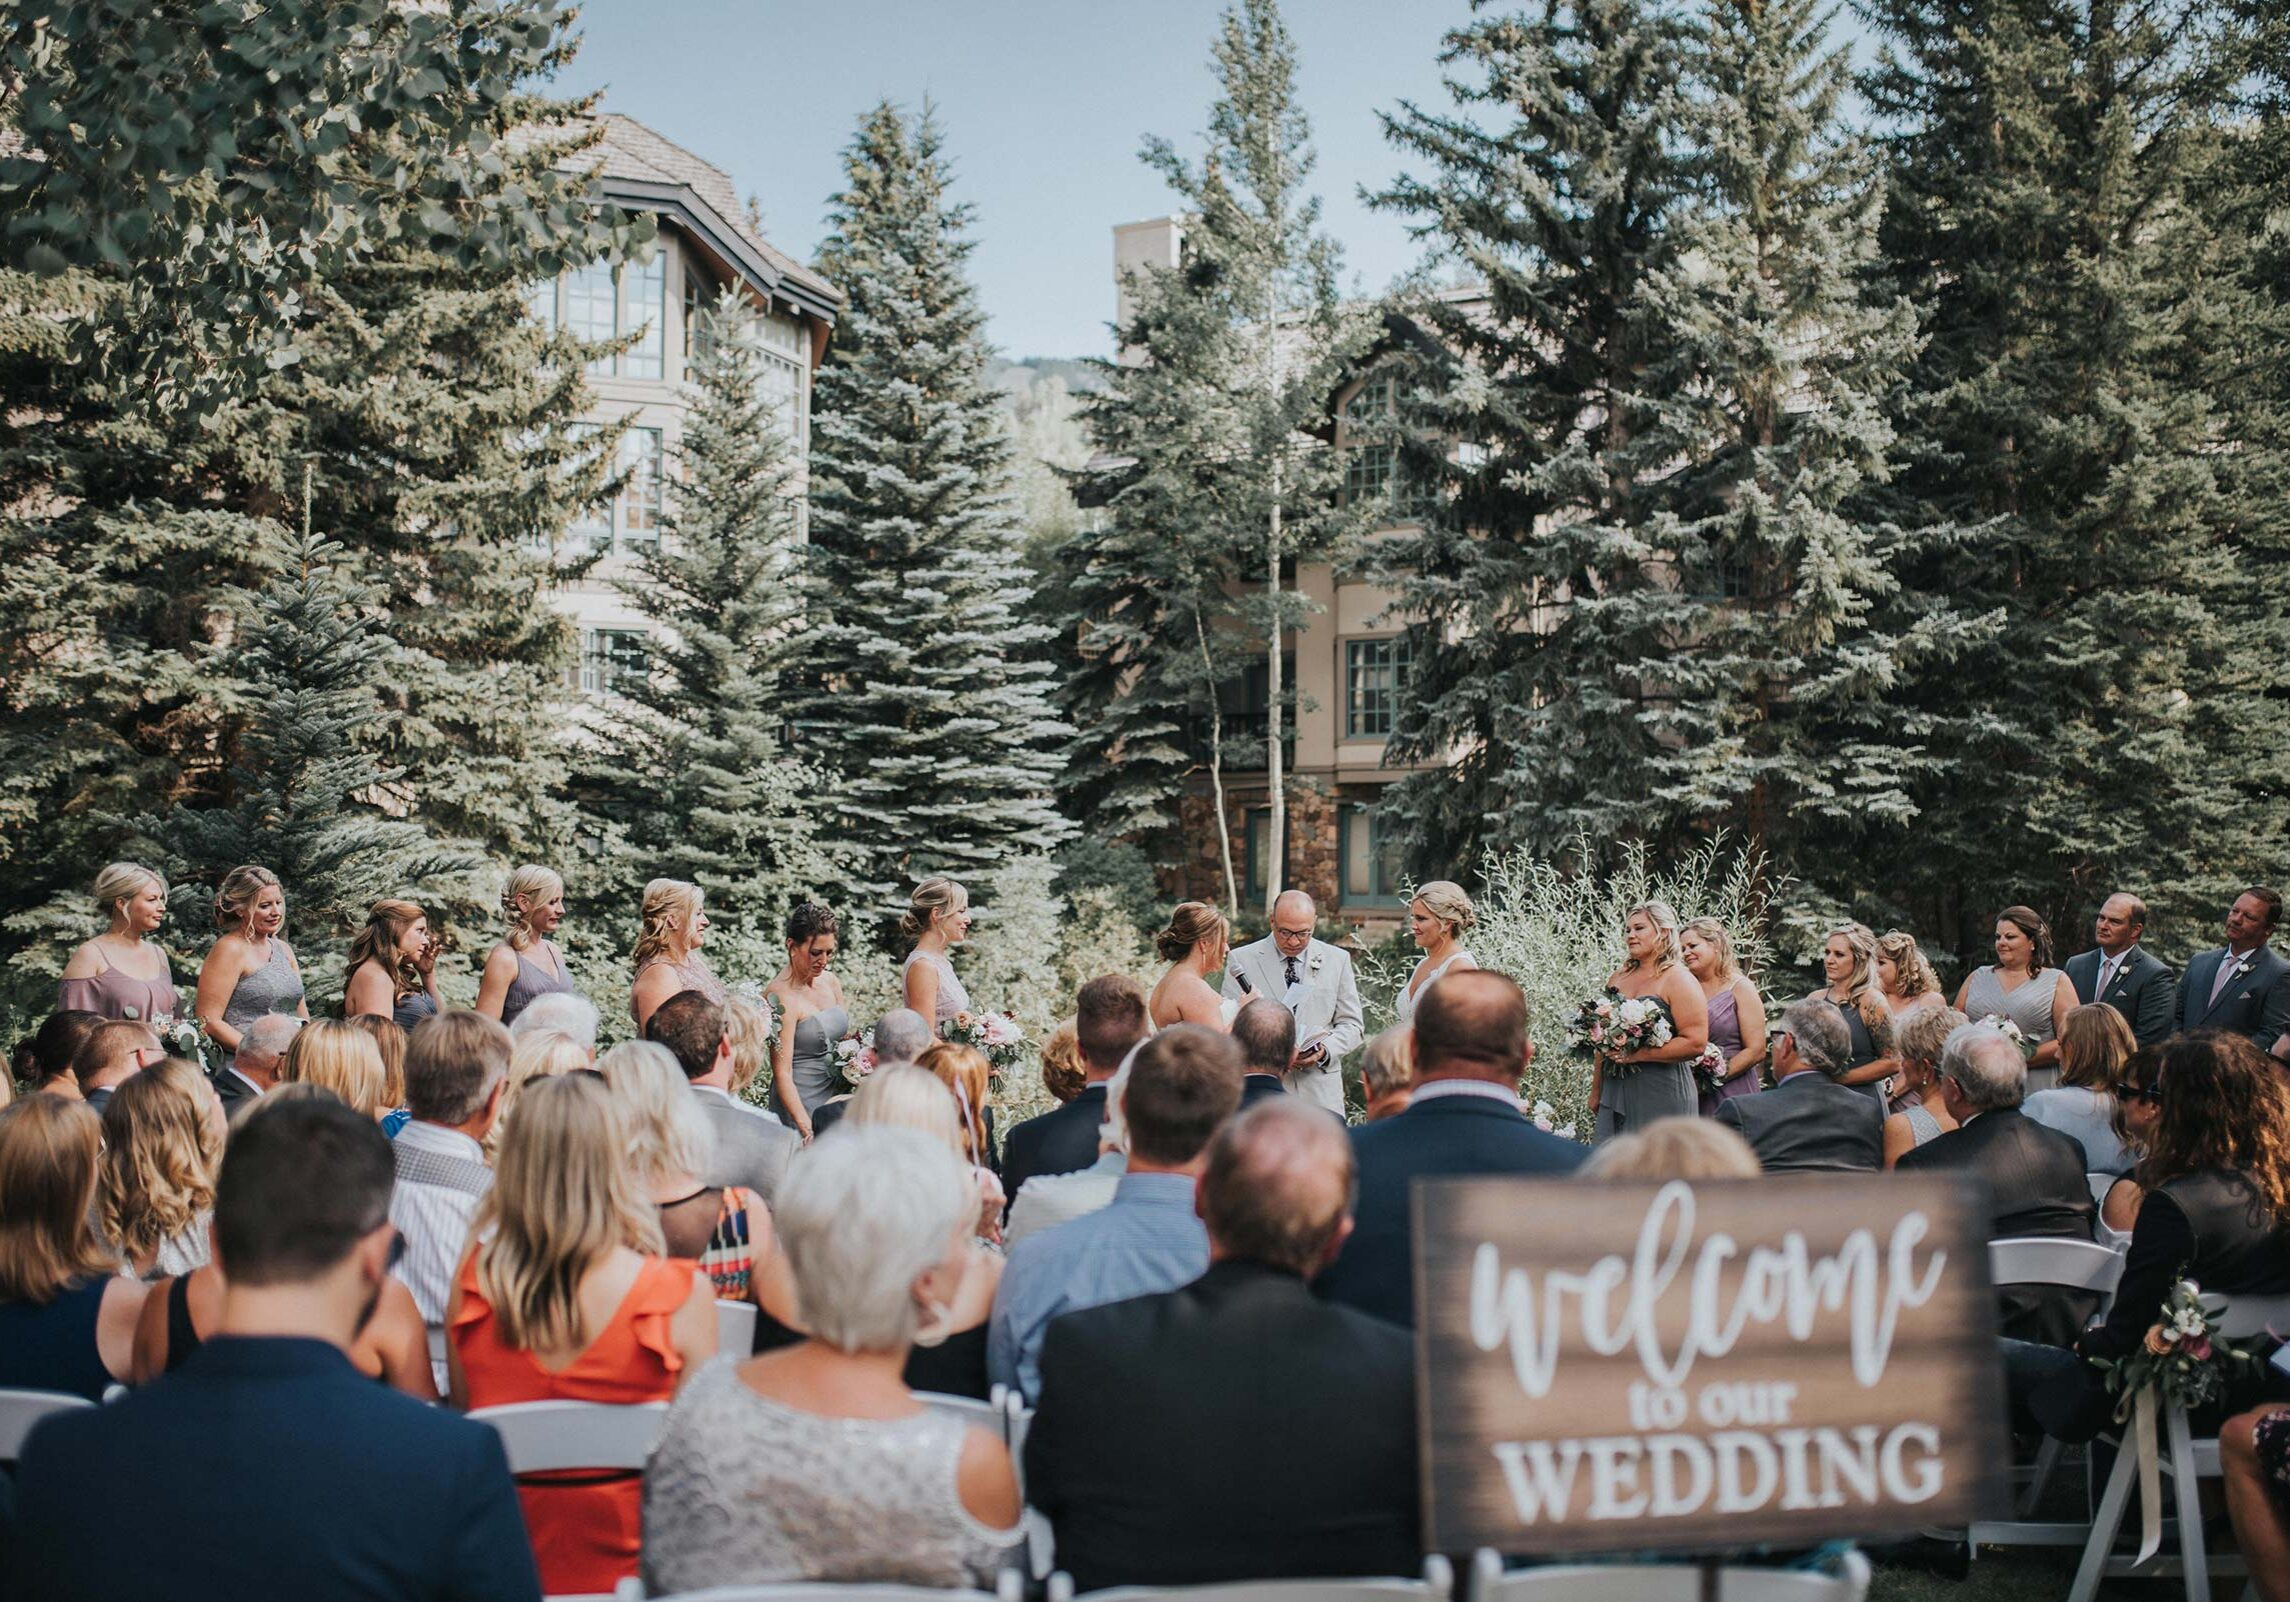 Wedding ceremony outdoors, pien trees and hotel in the background